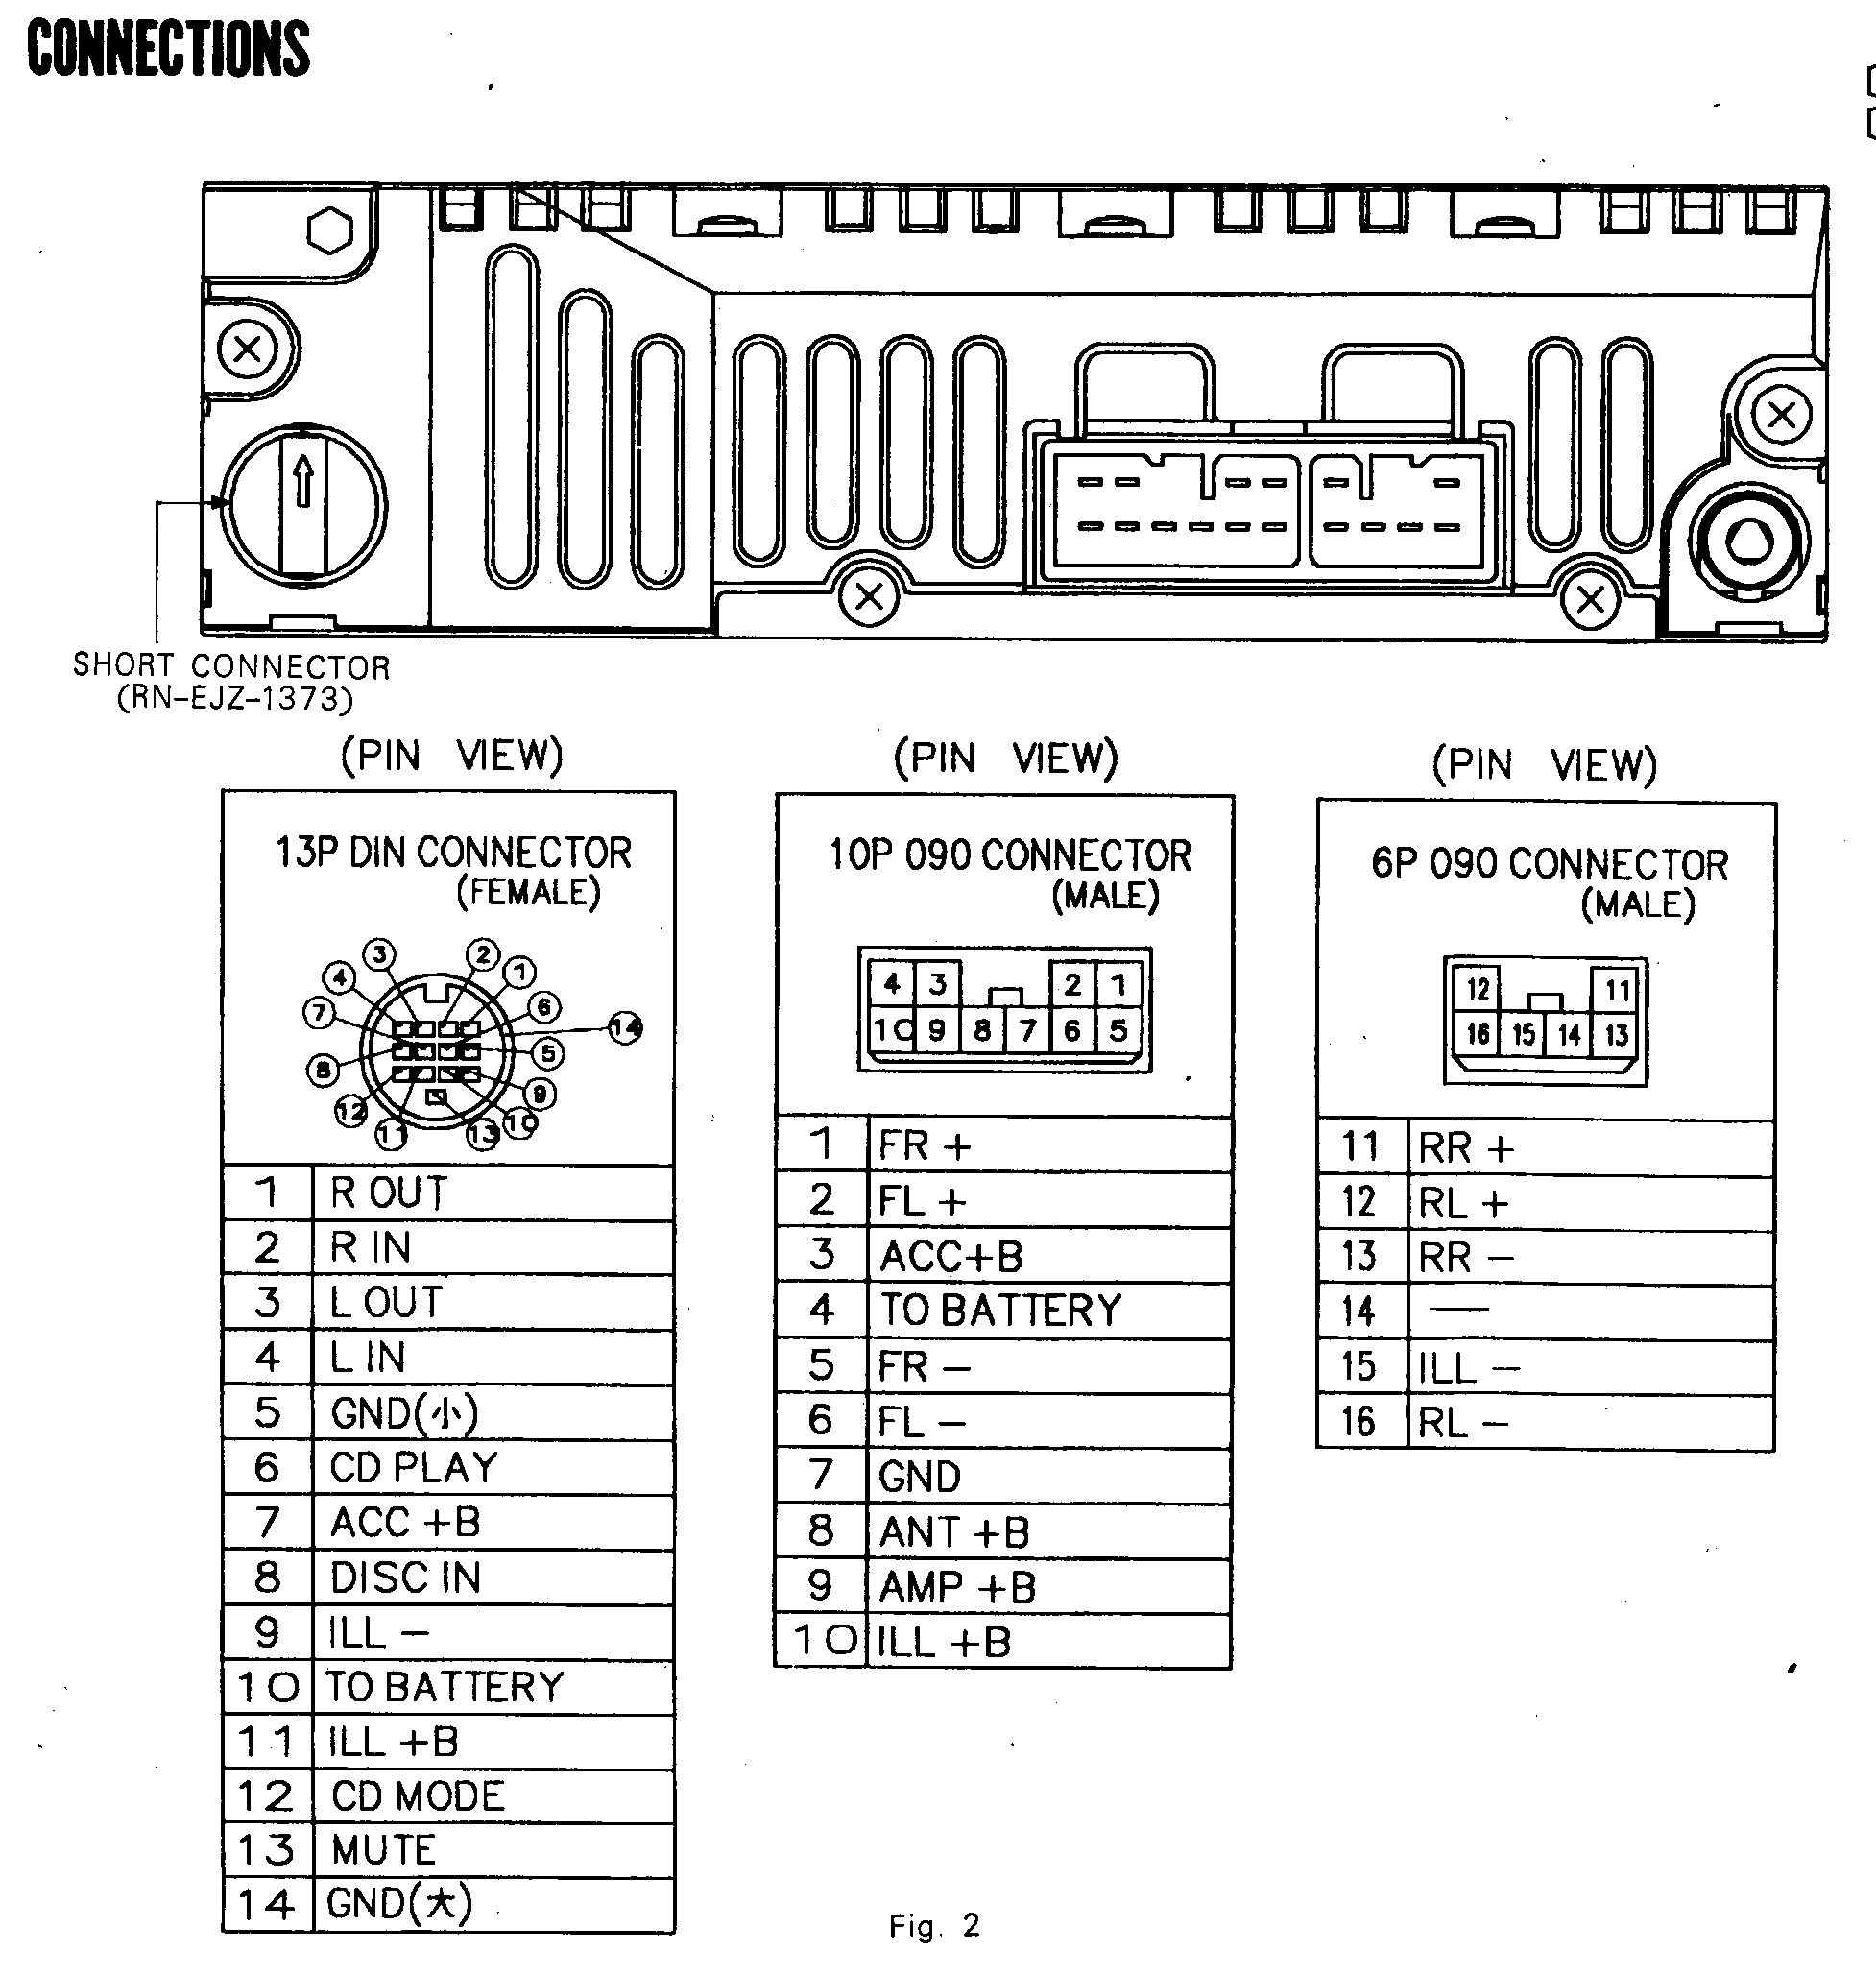 WireHarnessToy121003 car audio wire diagram codes toyota factory car stereo repair dock wiring diagram at bakdesigns.co